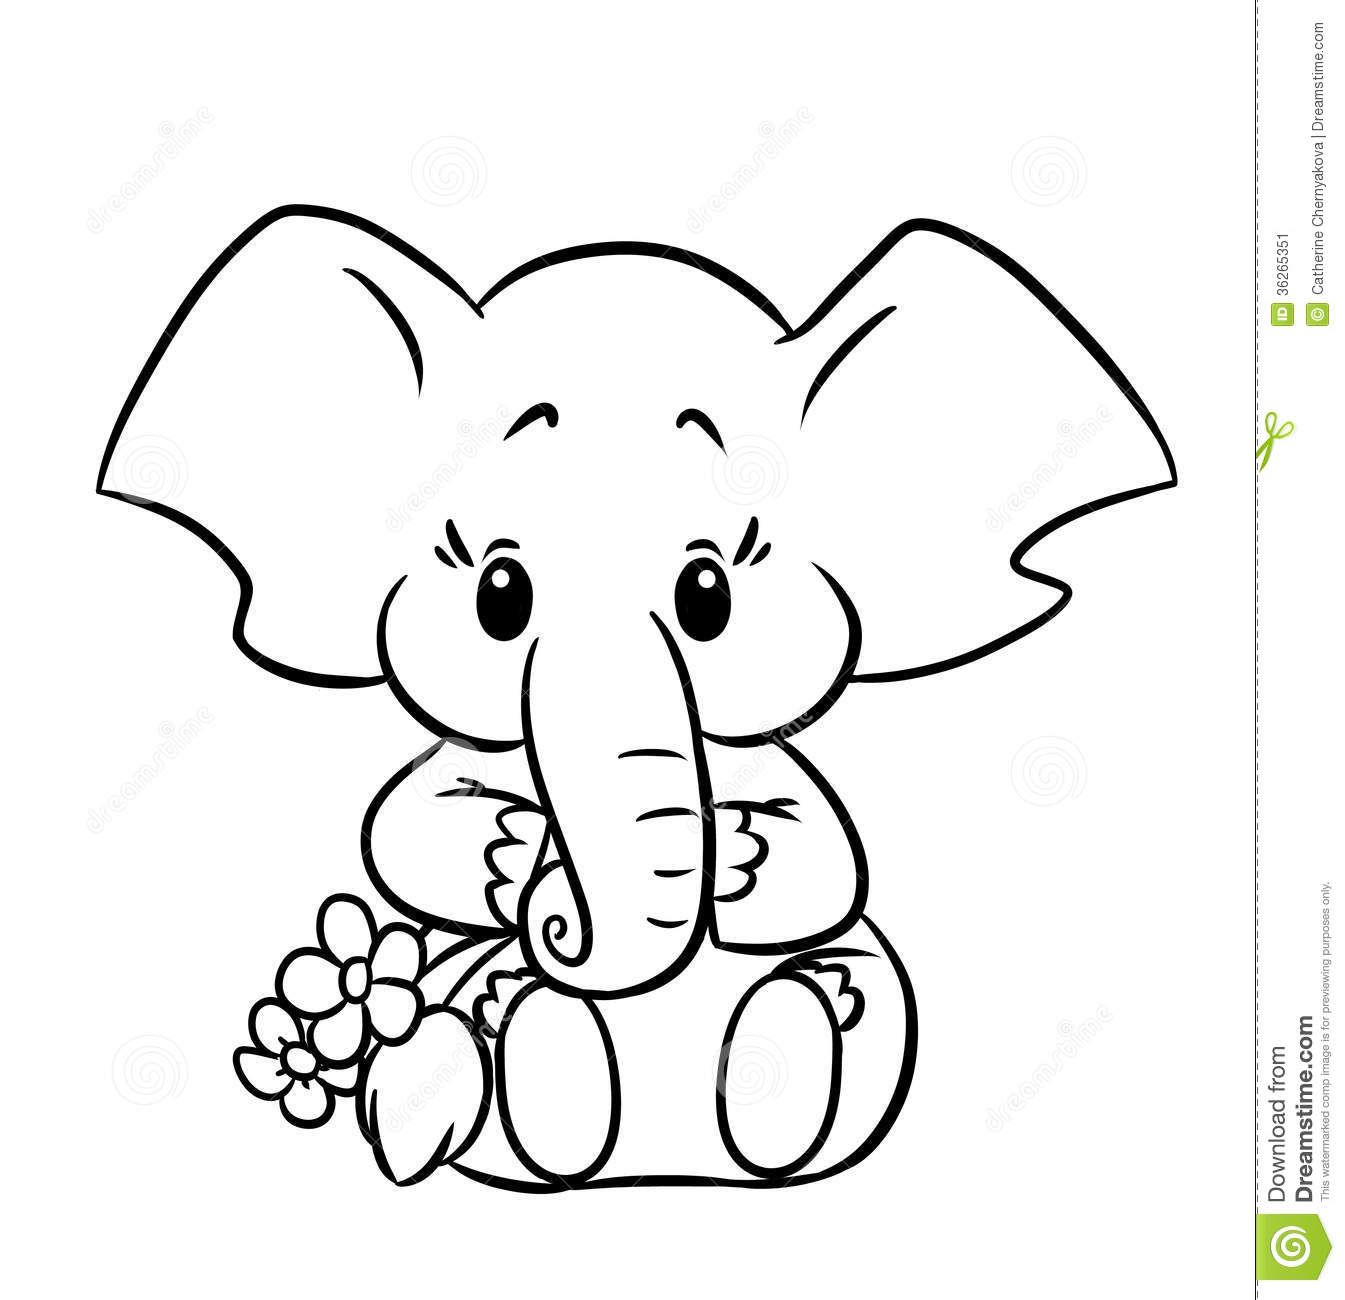 elephant coloring pages pinterest tumblr google yahoo imgur ...